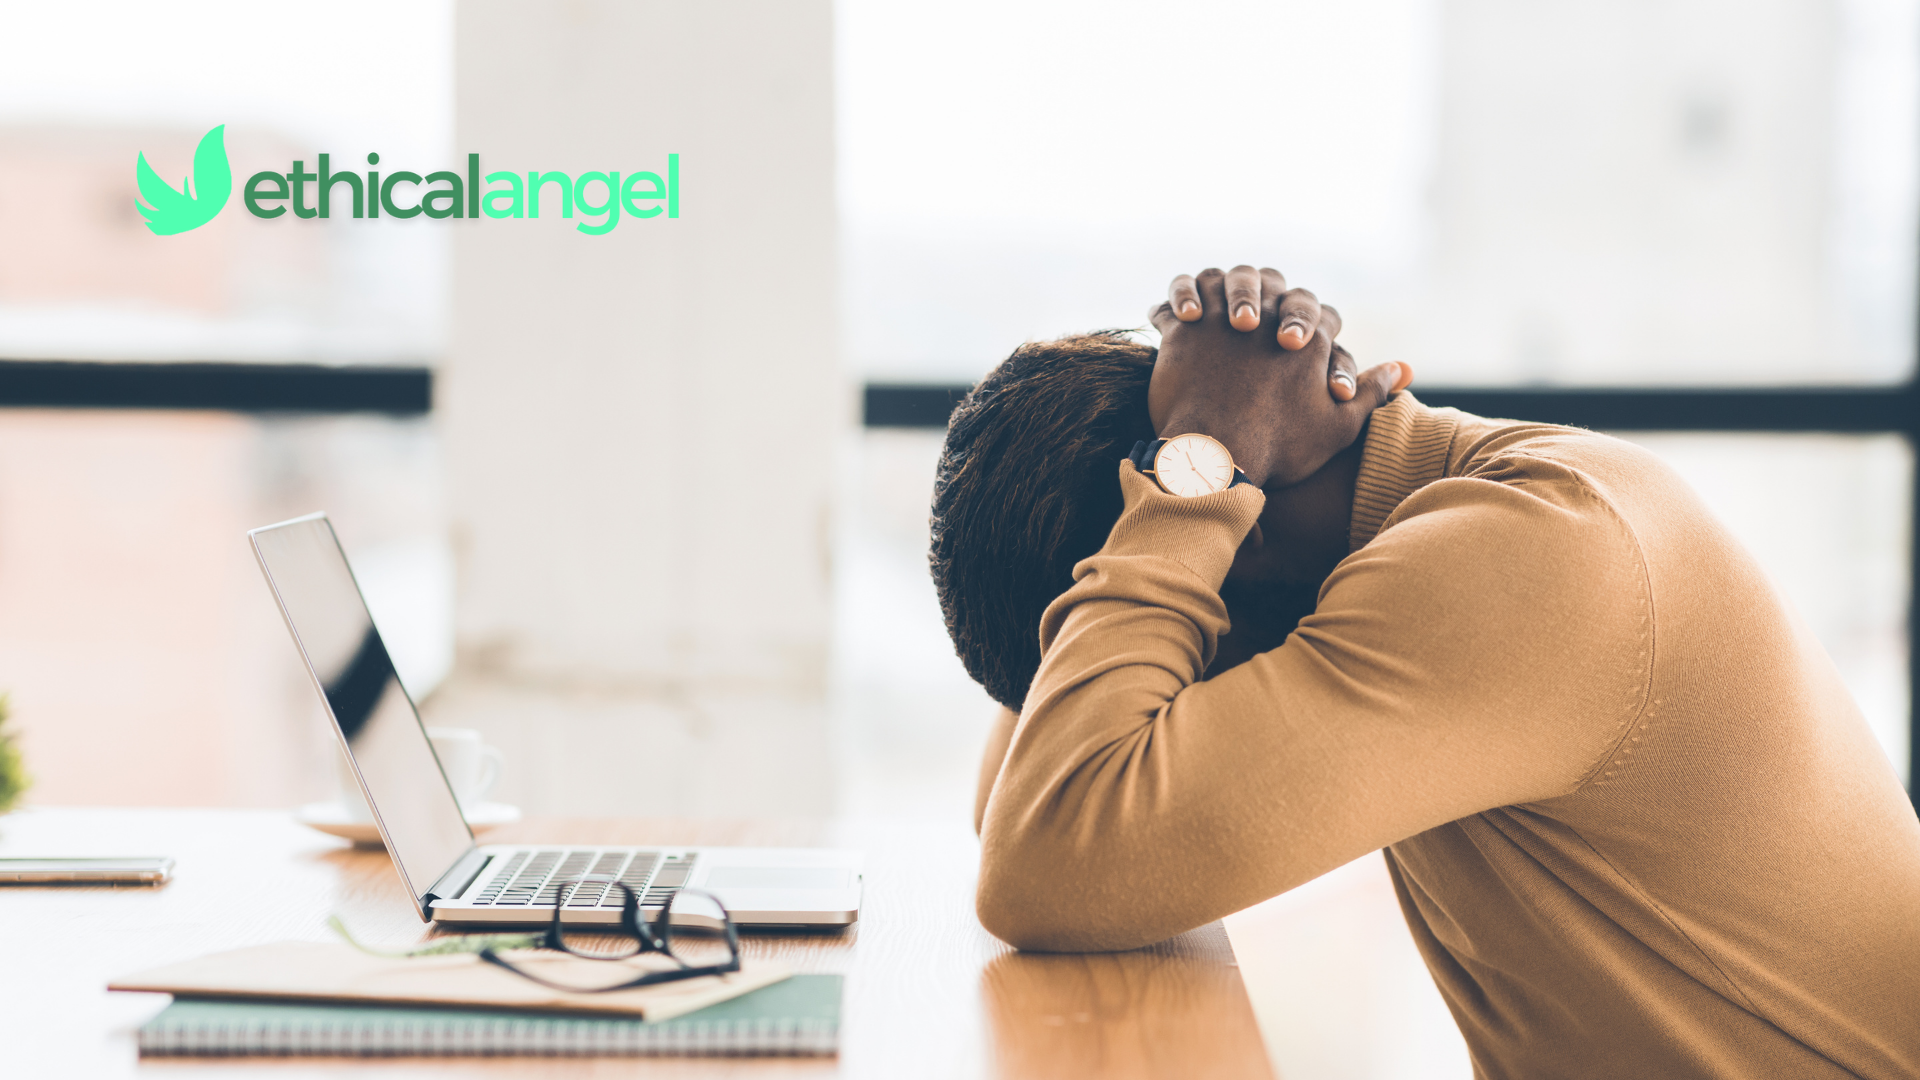 Ethical Angel supports middle managers